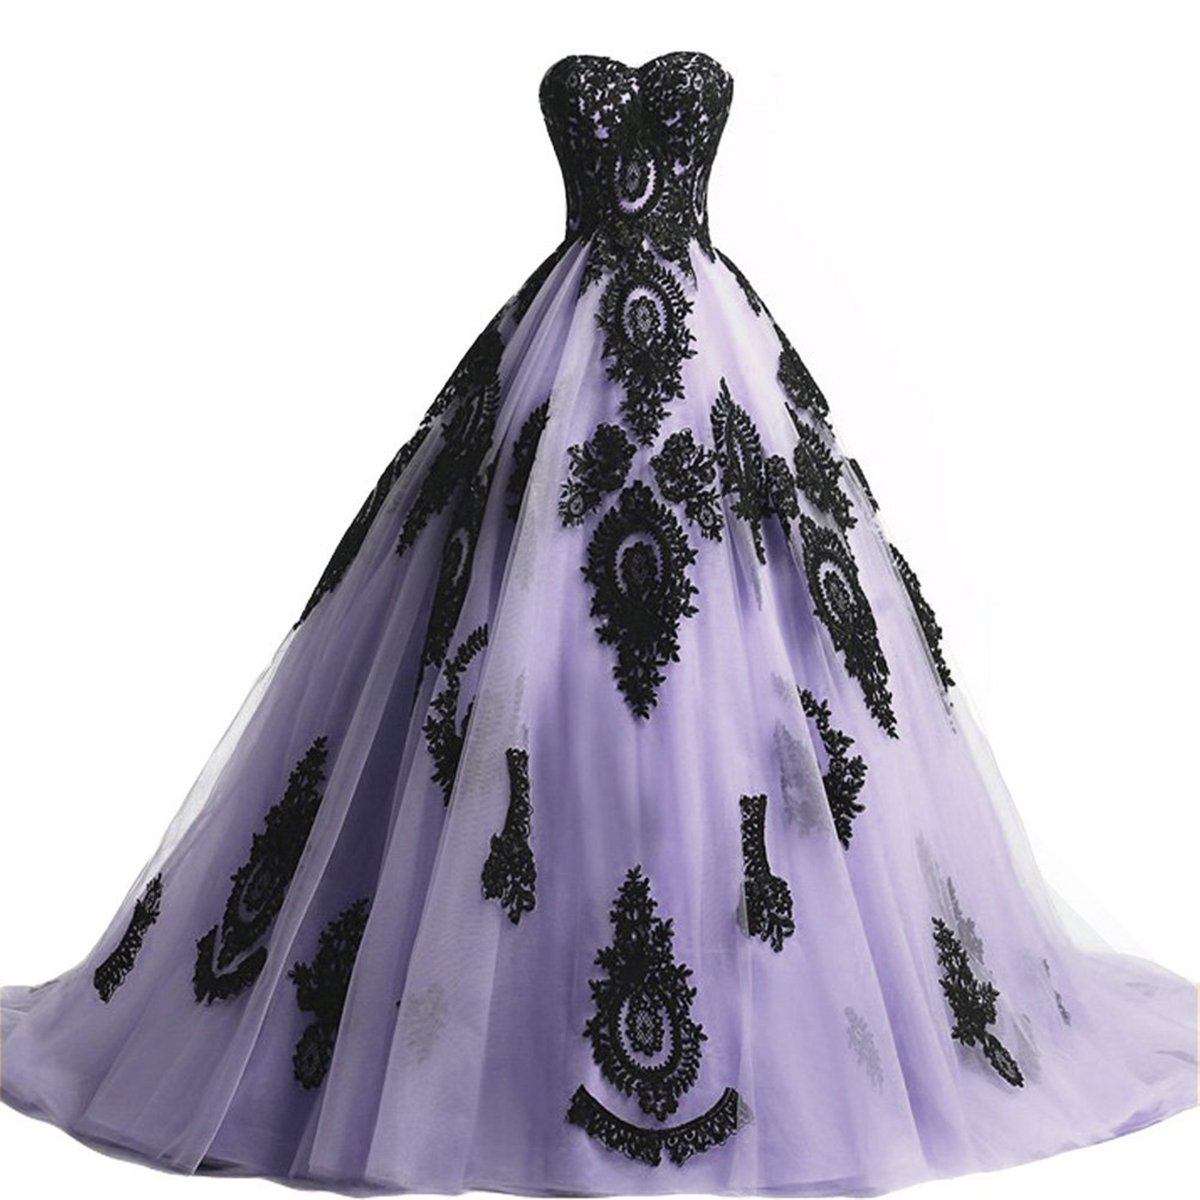 Lavender Miao Duo Women's Long Strapless Tulle Wedding Dresses Black Lace Brial Quinceanera Ball Gown W01